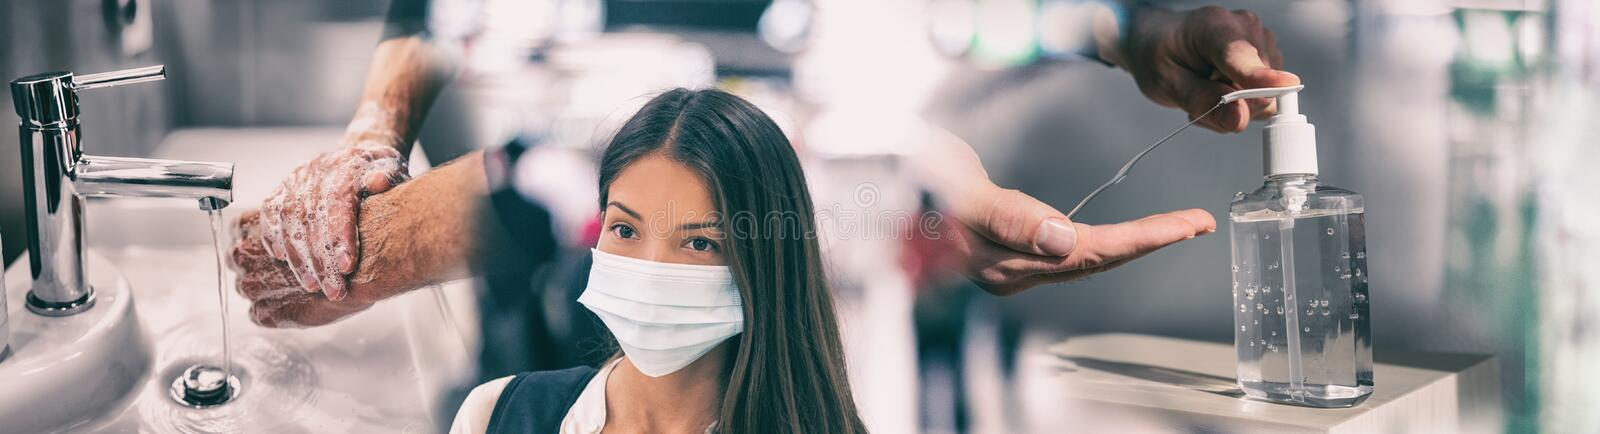 Coronavirus corona virus prevention for COVID-19 banner. Hand sanitizer alcohol gel rub vs washing hands hygiene in. Hospital or Asian women wearing face mask stock images